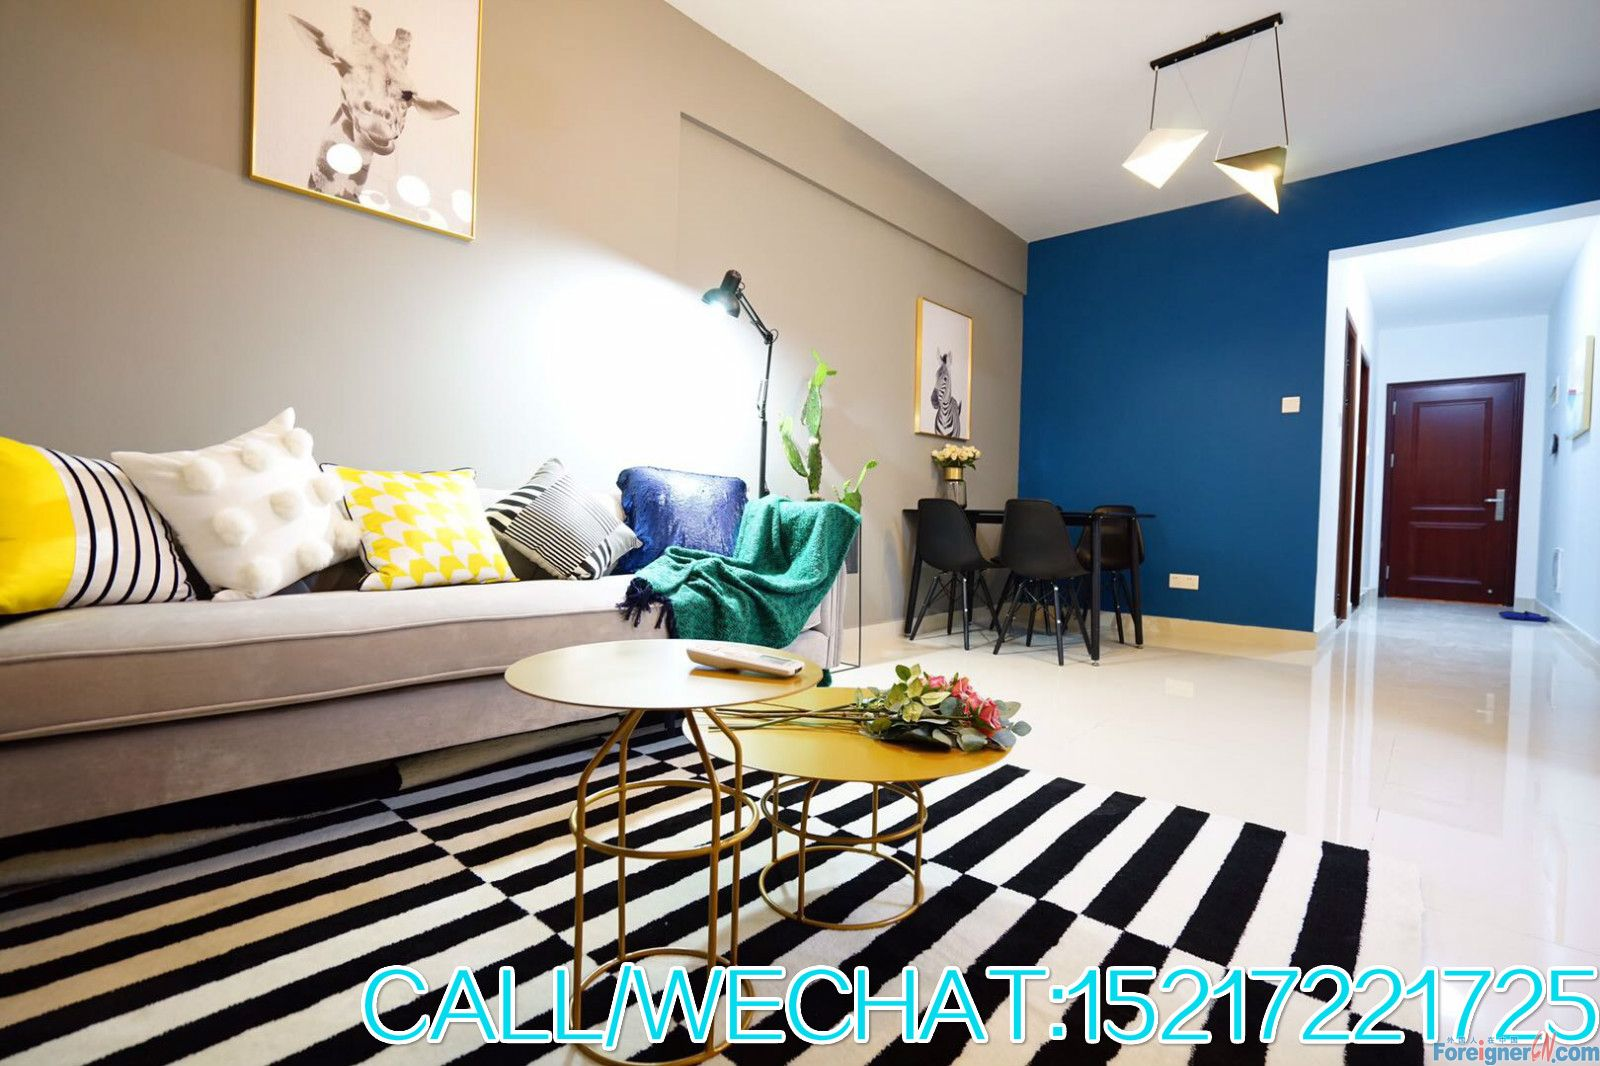 Nice 2brs,new furnitures,high floor,wonderful view,clean and bright,morden and cozy,CBD area.convenient.